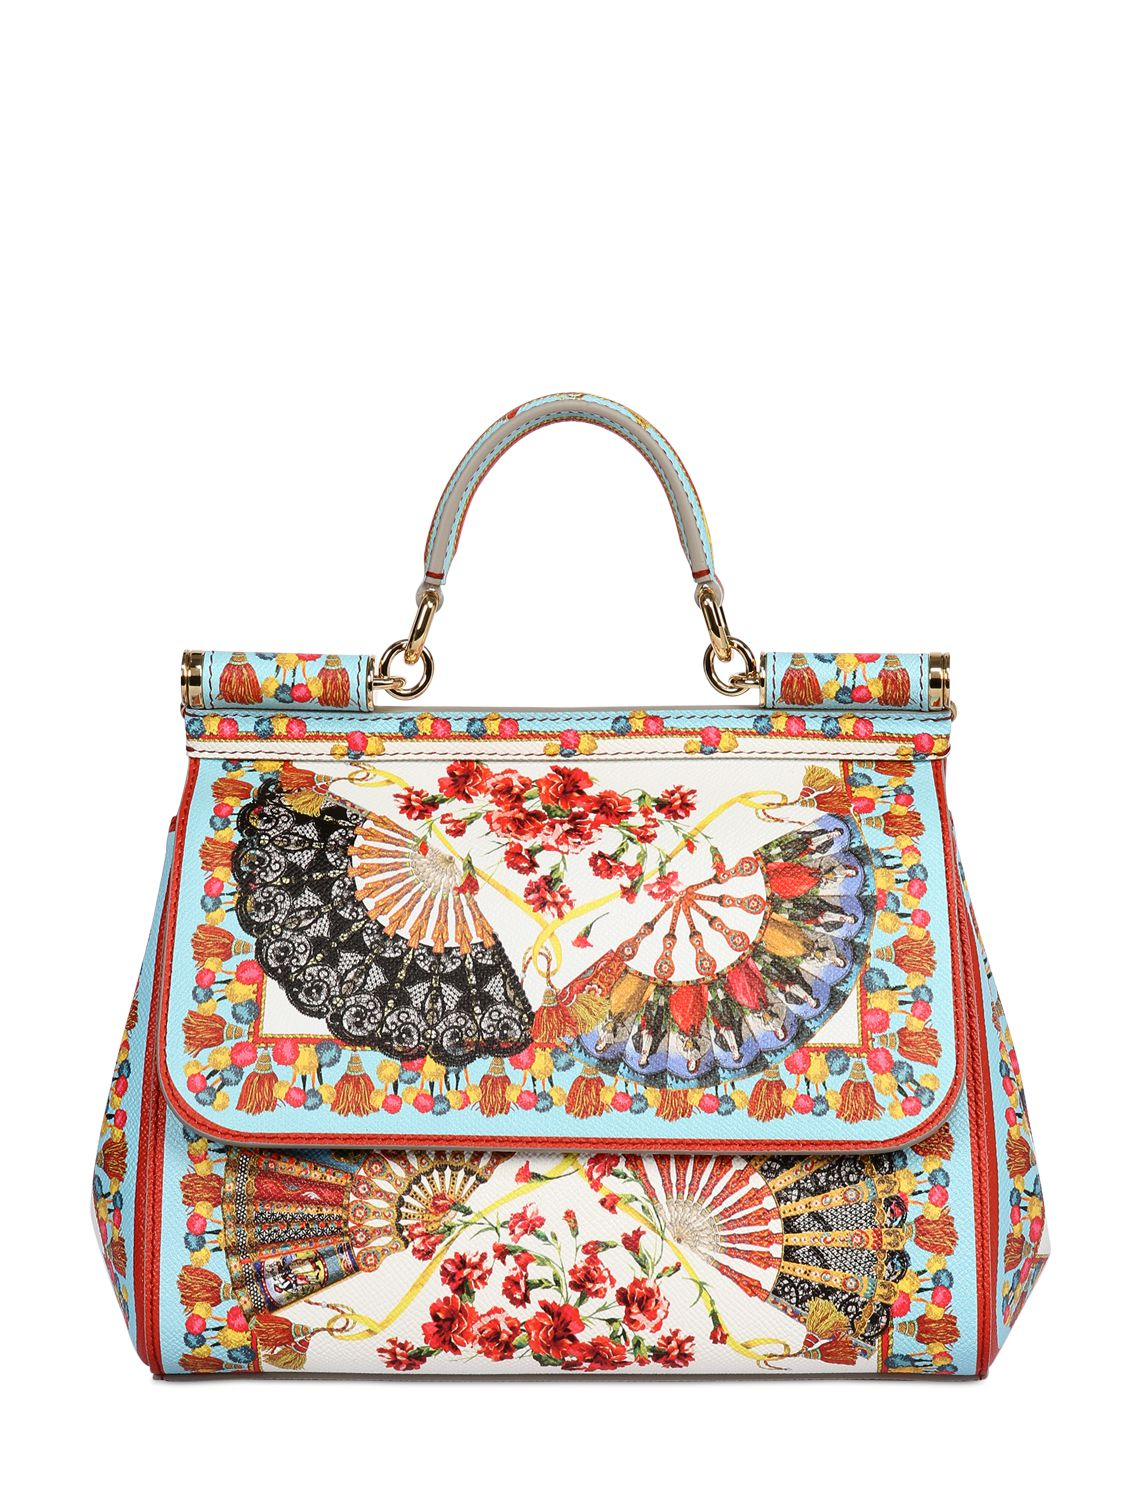 Lyst - Dolce   Gabbana Sicily Medium Printed Textured-leather Tote ... 60918a3d5f